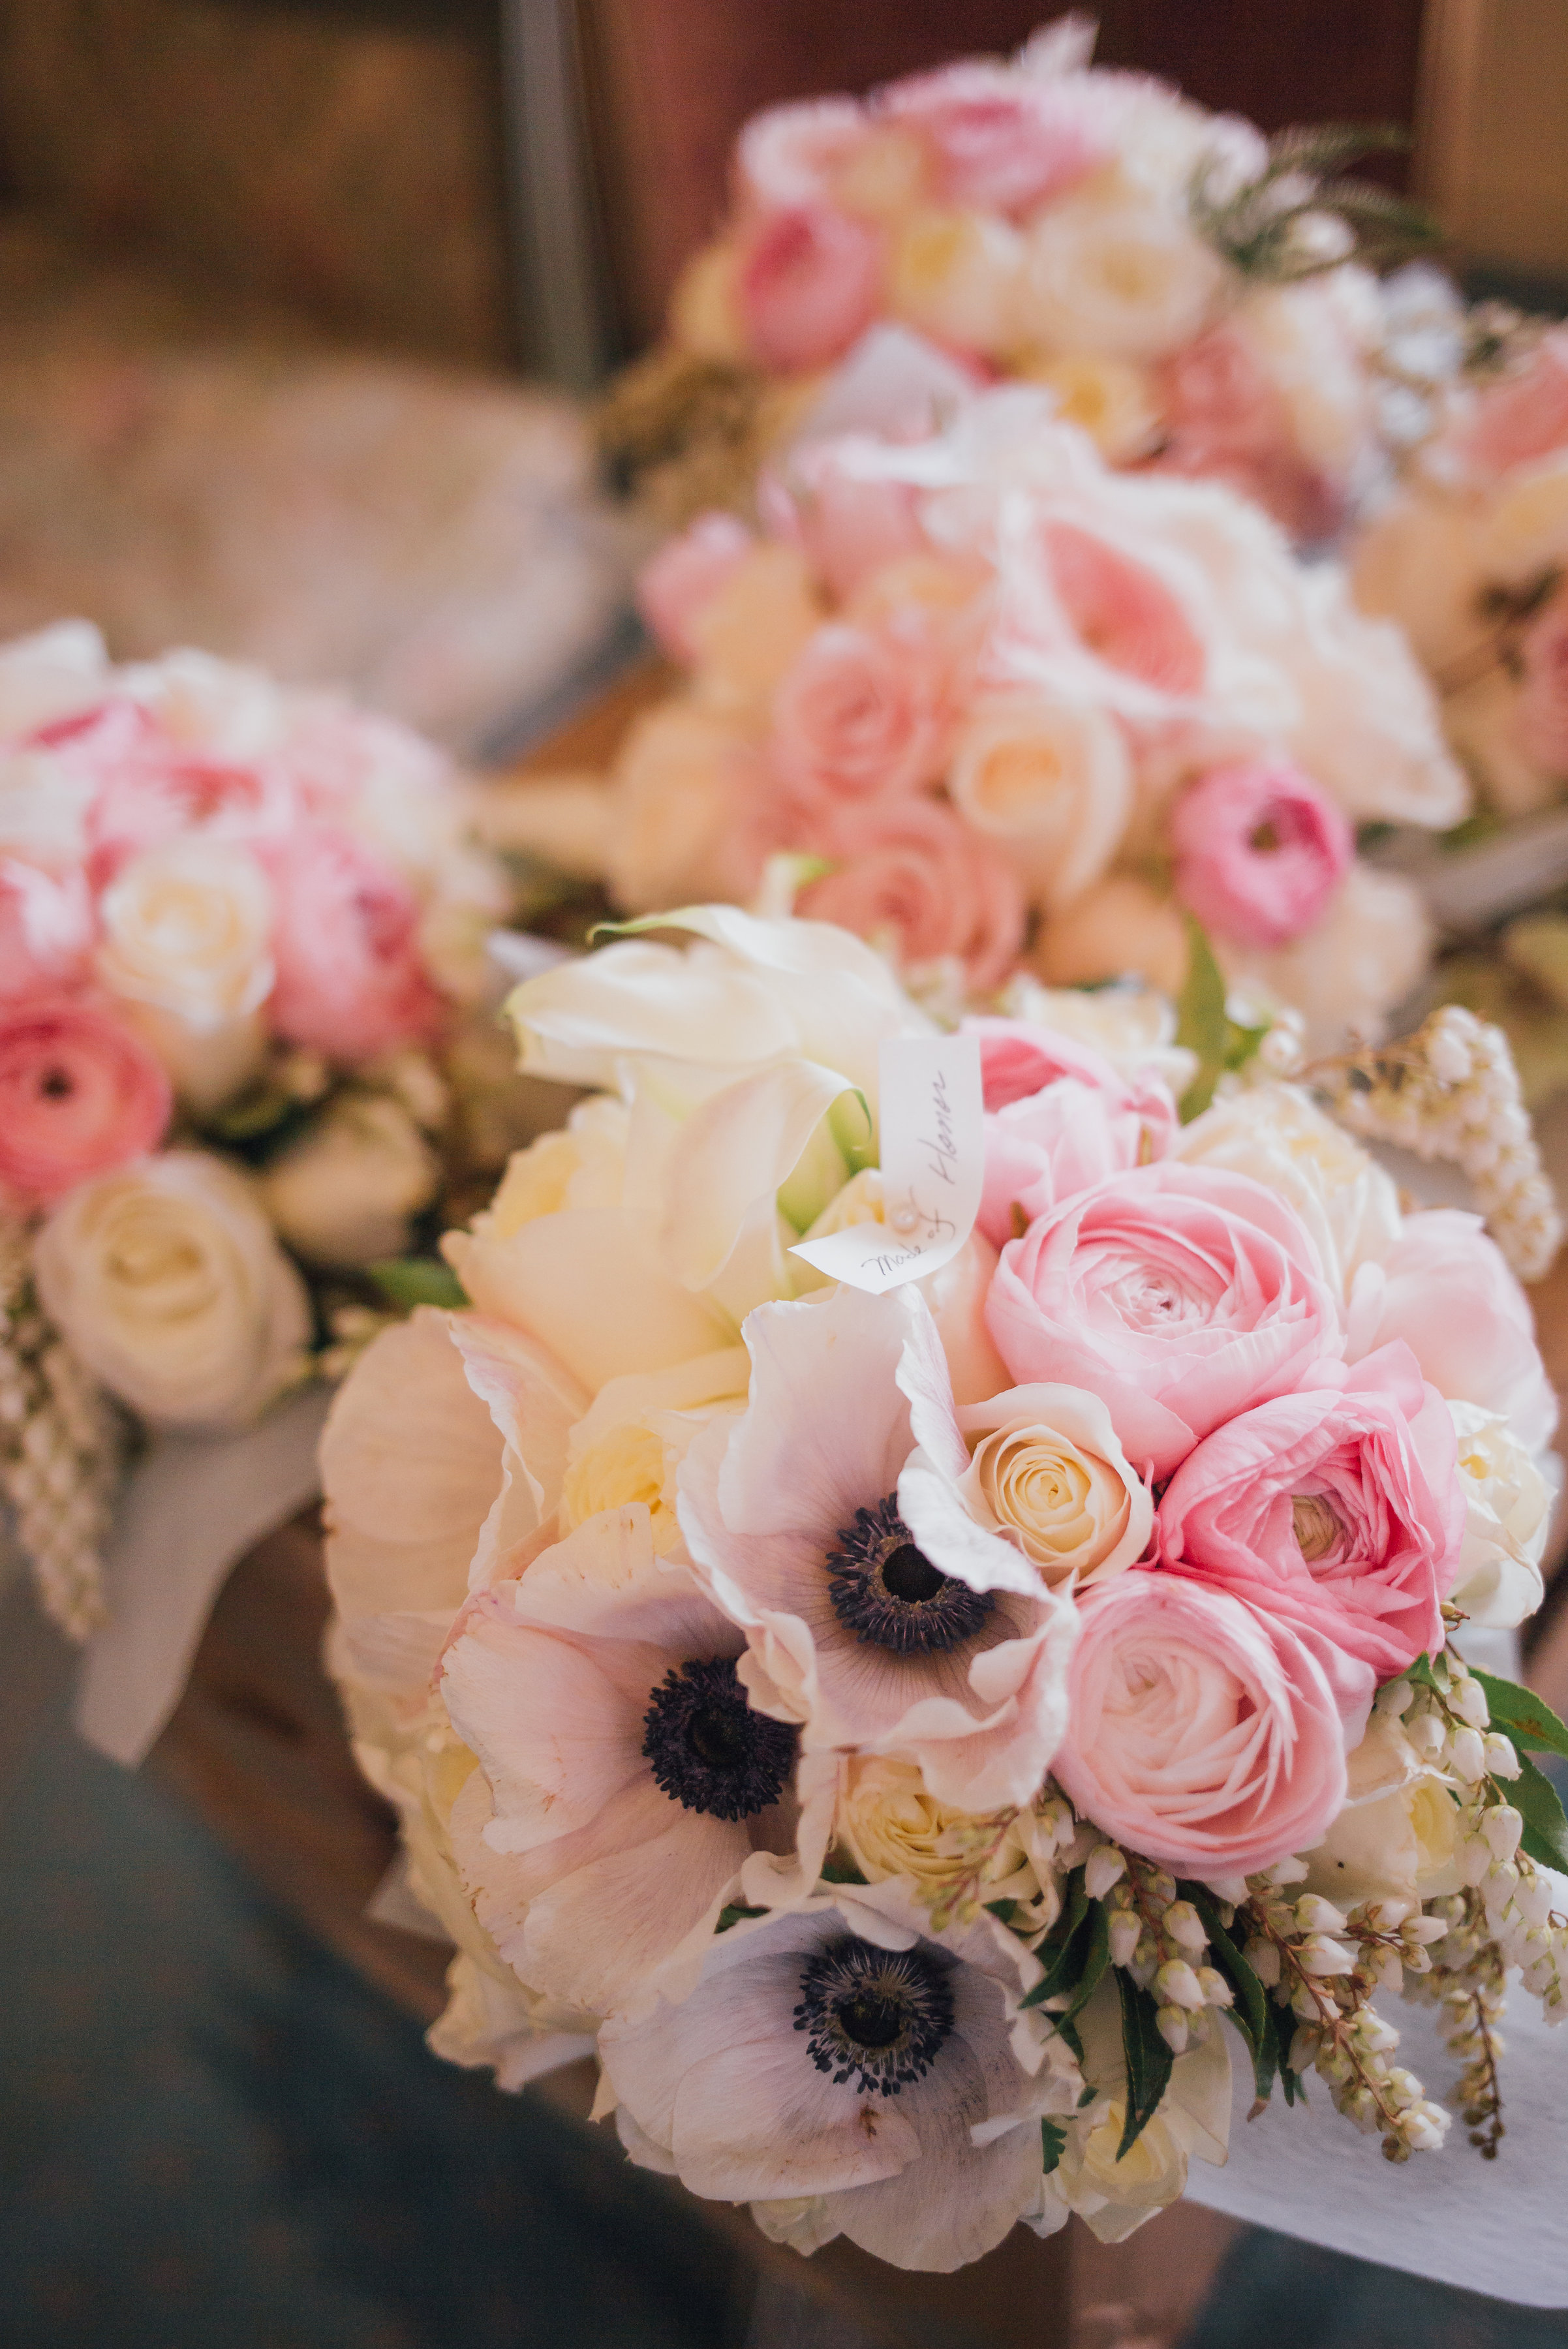 krystal and ananth wedding with cluster events floral.JPG